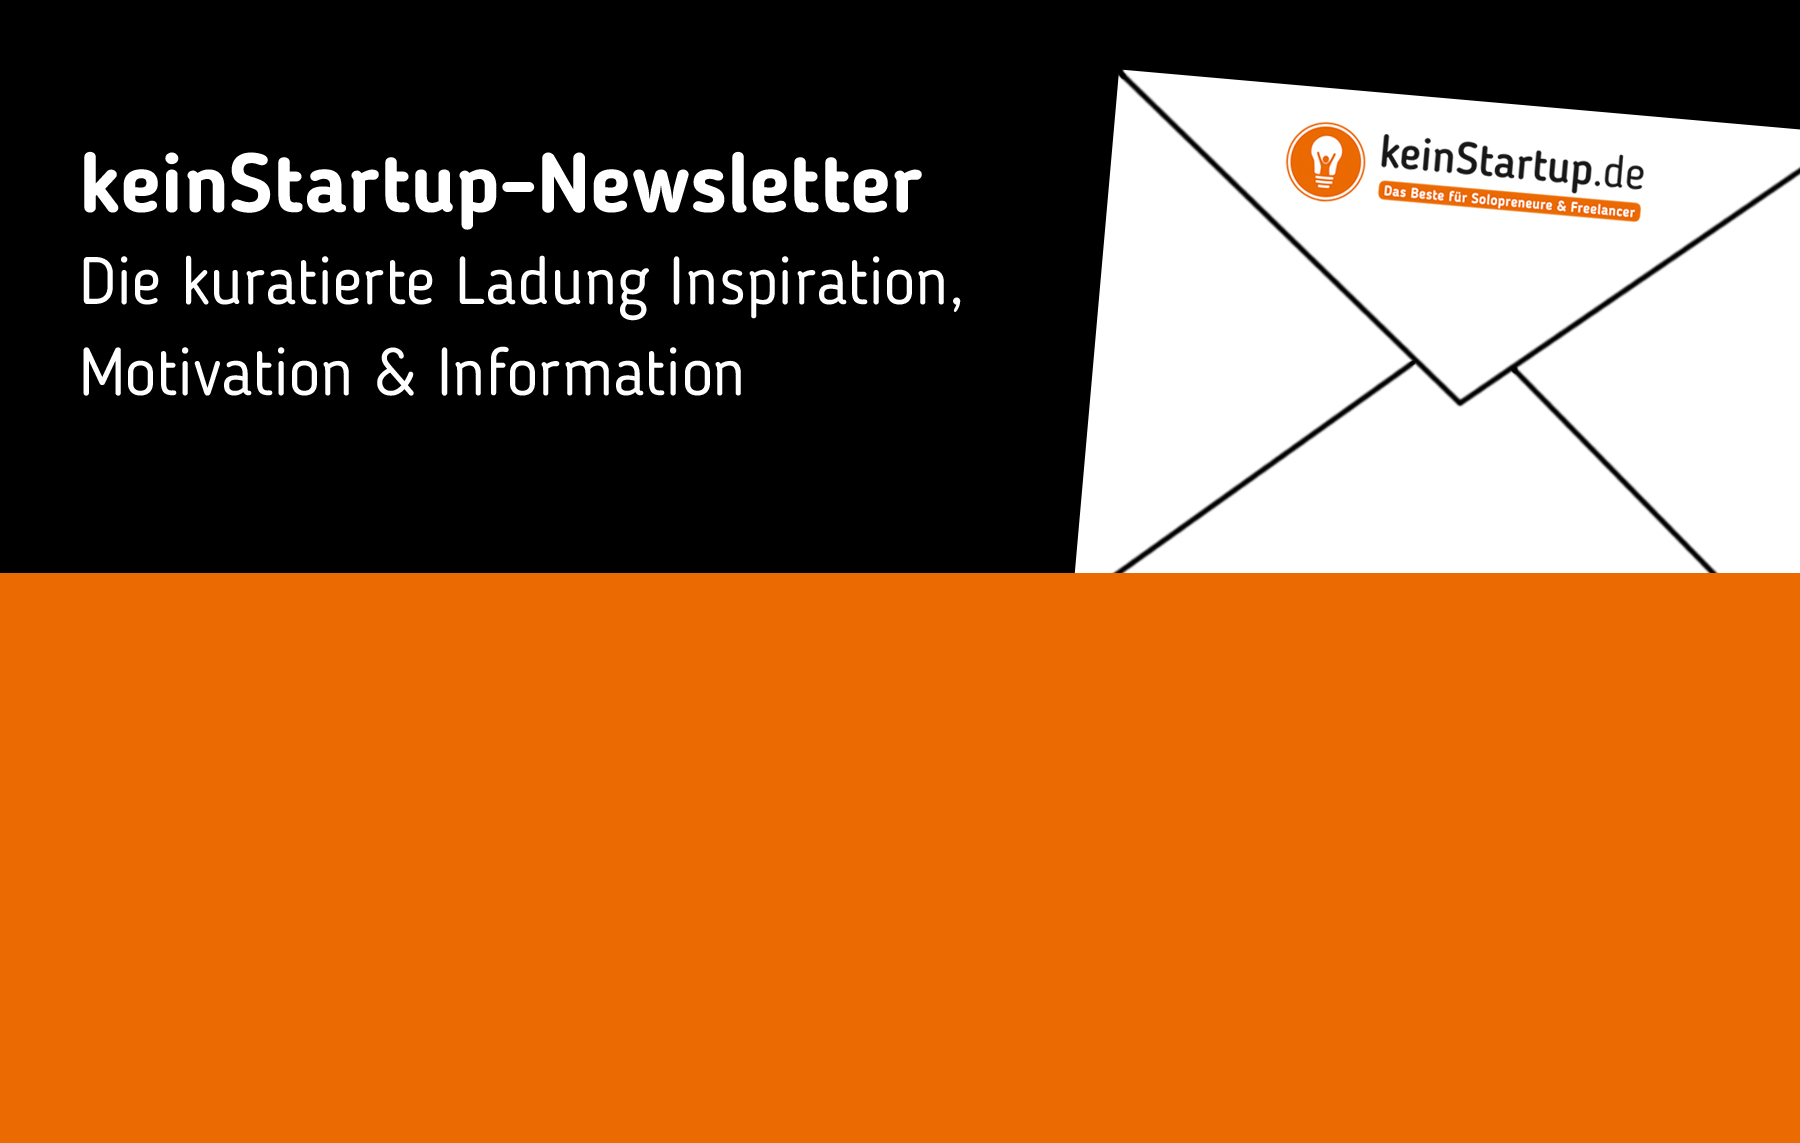 Newsletter #16: Kundenakquise, Elevator Pitch, Routinen